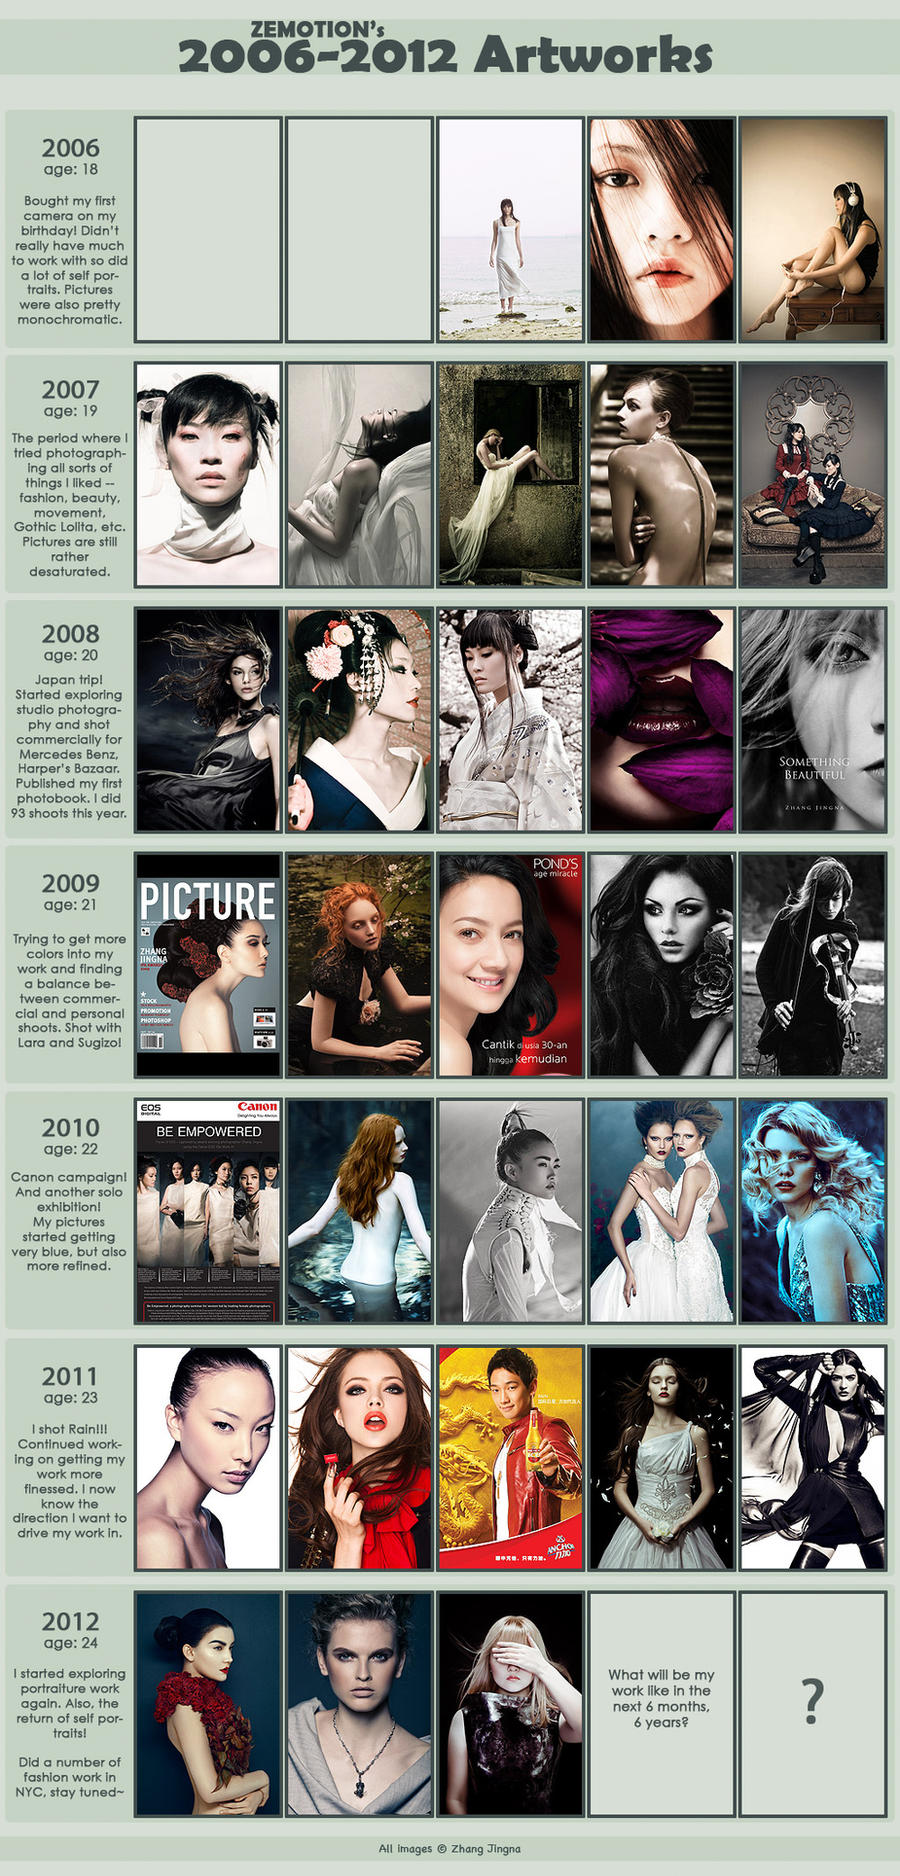 2006-2012 Artwork Meme by zemotion